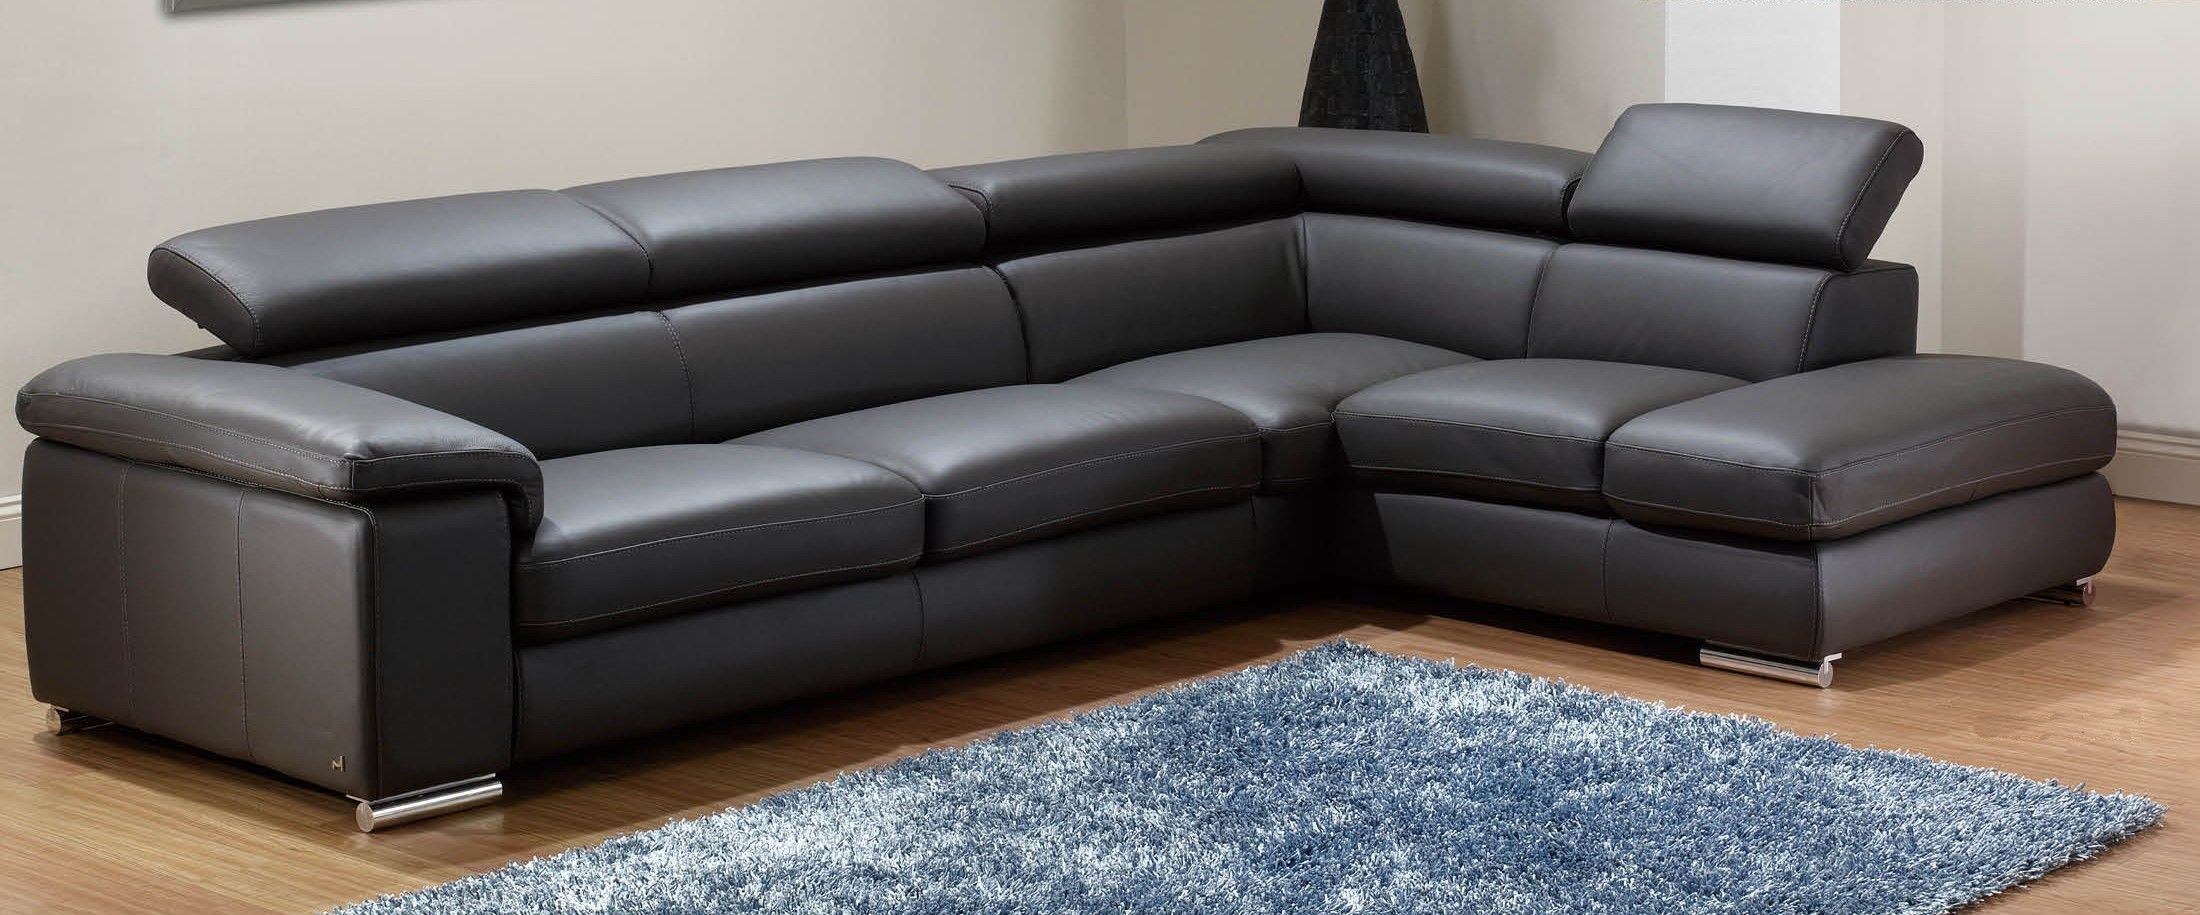 lovely full reclining sofa design-Lovely Full Reclining sofa Ideas